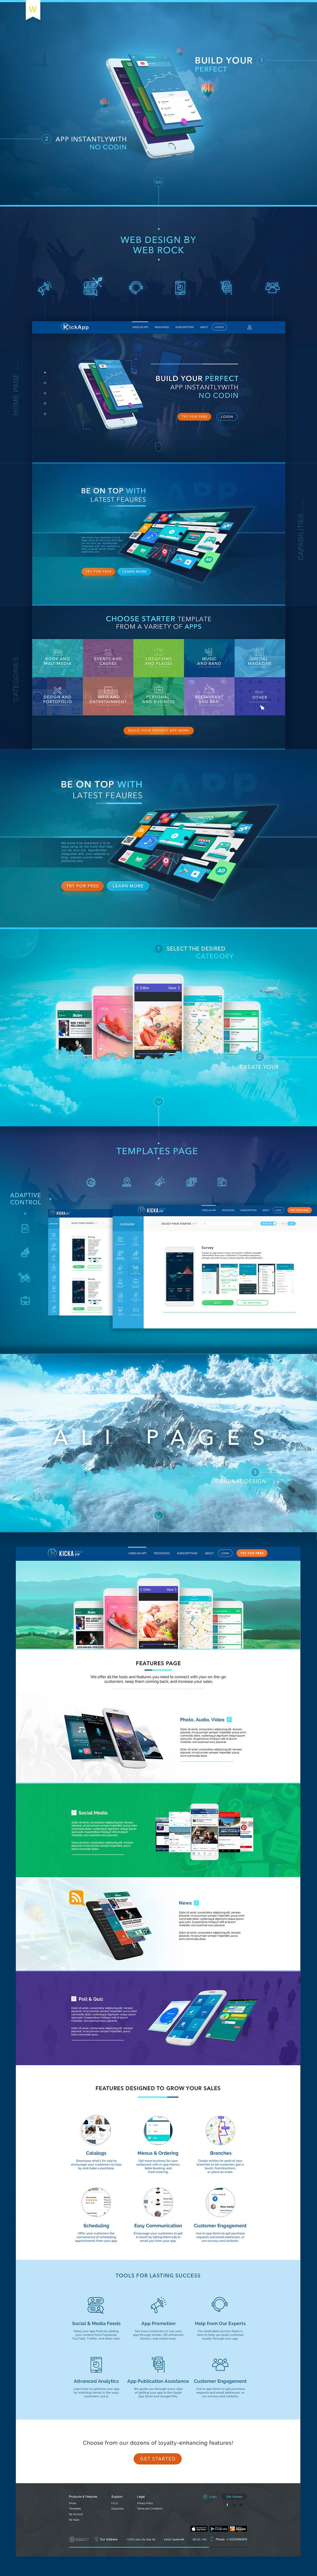 Best 25+ Application design ideas on Pinterest | Ui design, UX/UI ...